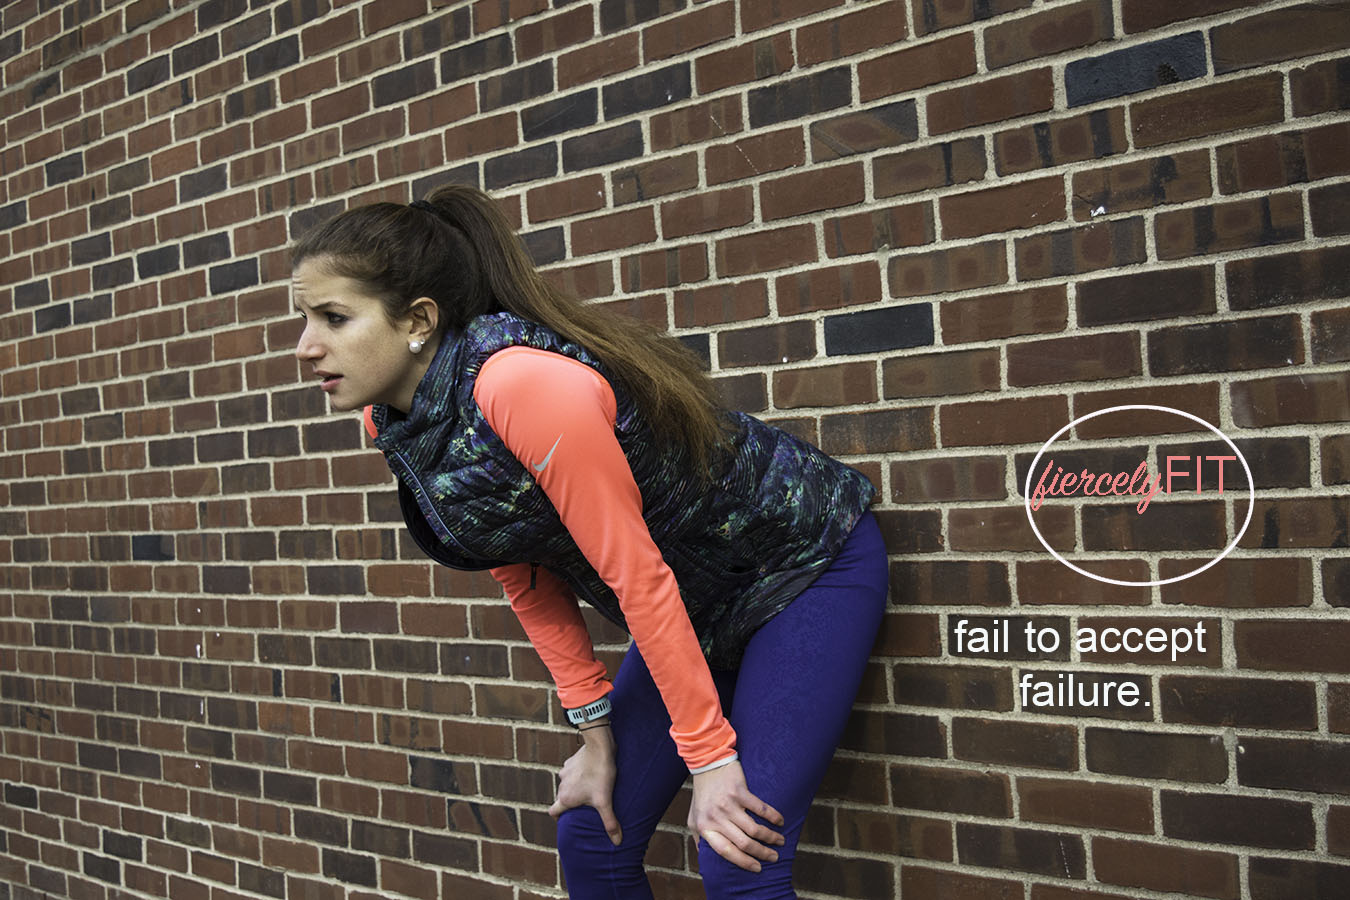 Joy_Lewis_Branding_Athletic_Wear_Fiercly_Fit_Leaning_Against_Wall_Catching_Breath